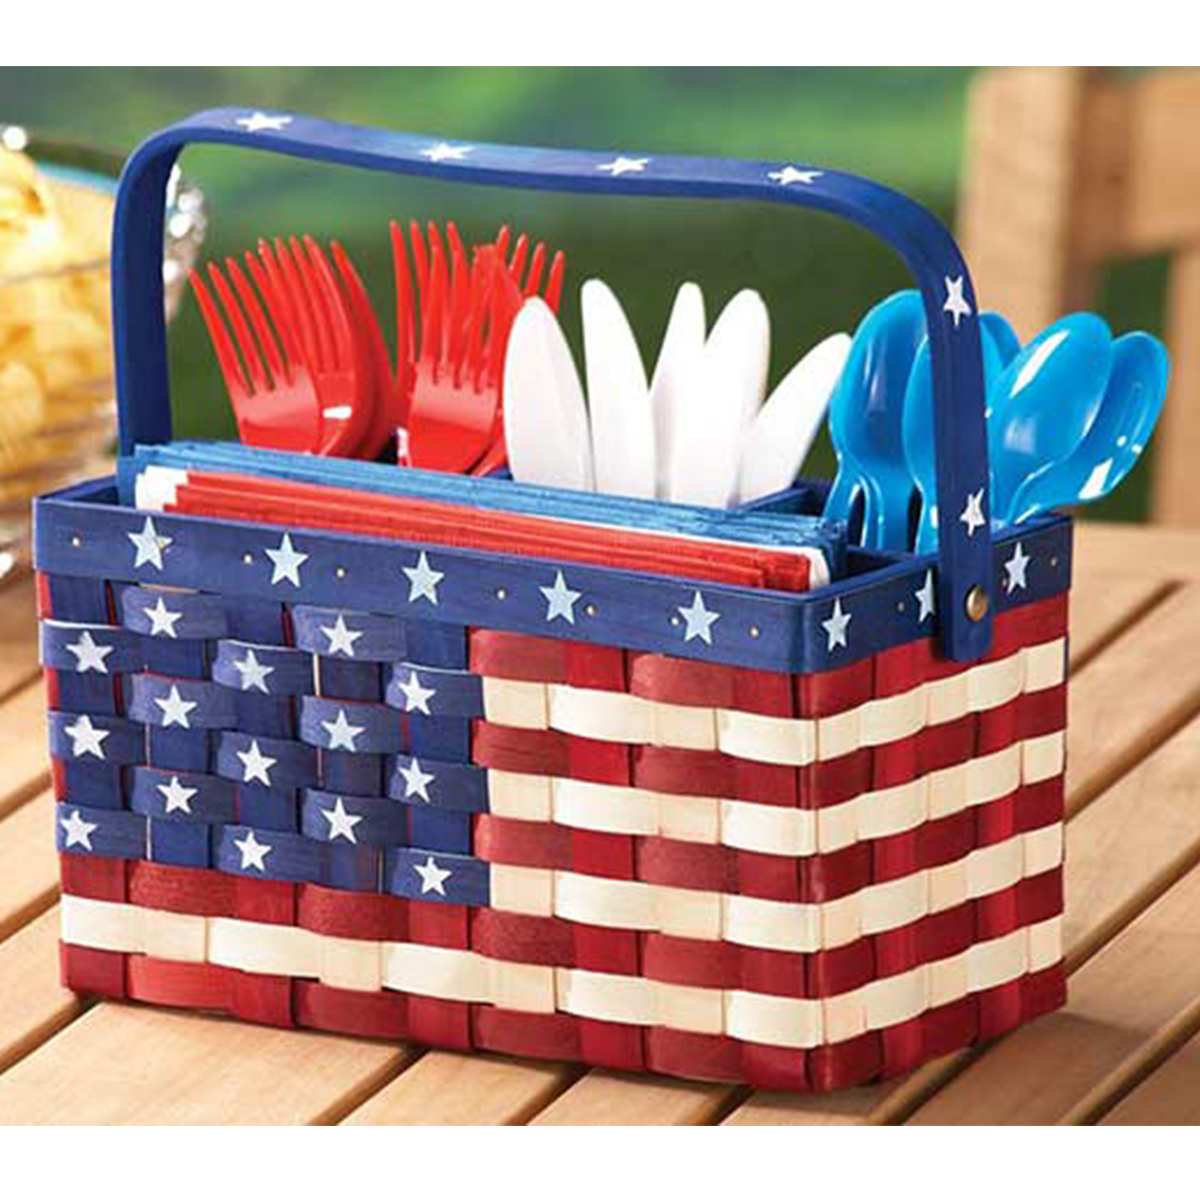 A utensil holder with an American flag print photo